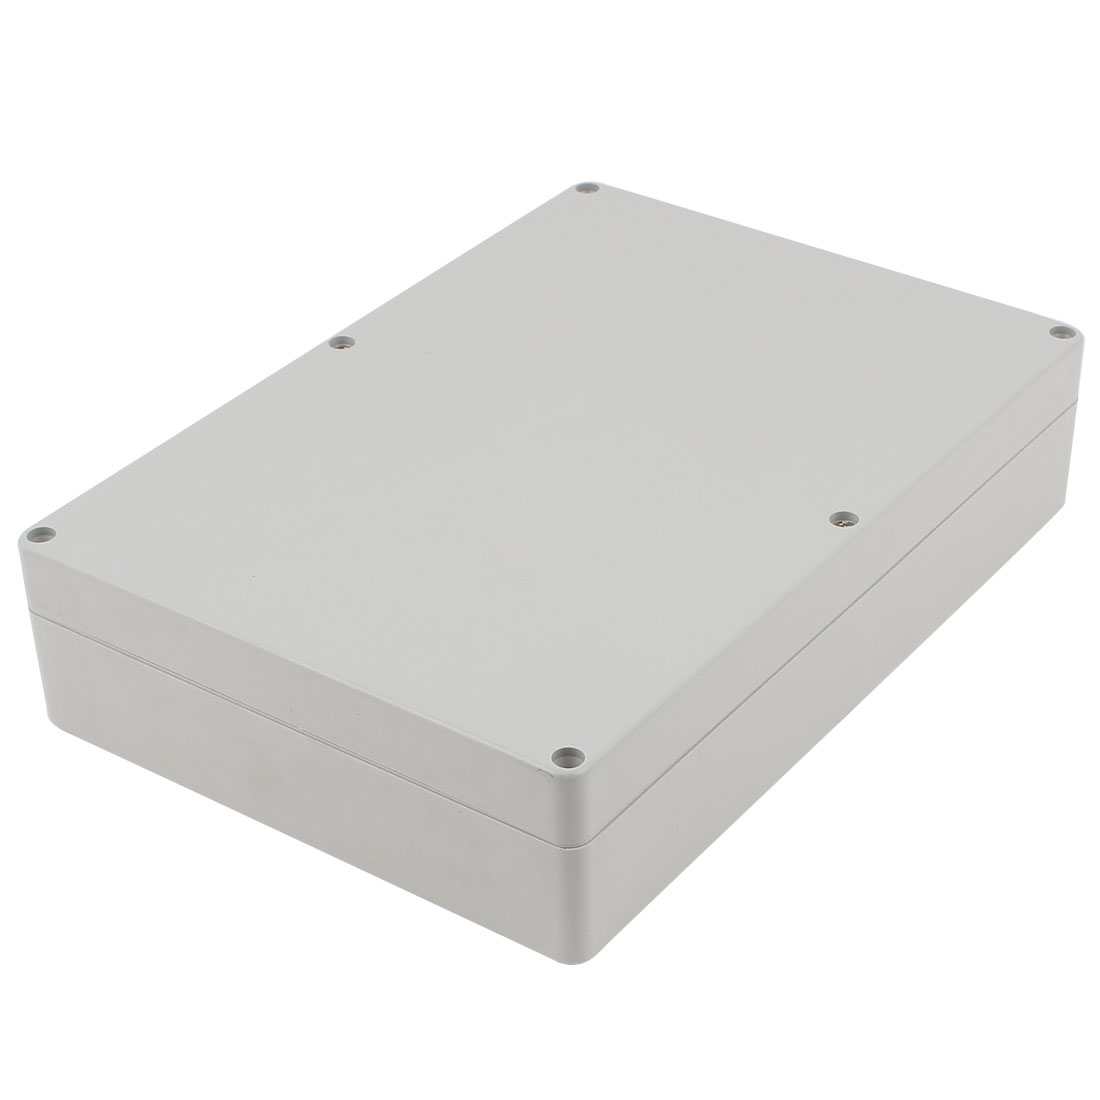 Dustproof IP65 Gray Plastic Project Enclosure Case DIY Electronic Wiring Junction Box 265x185x61mm